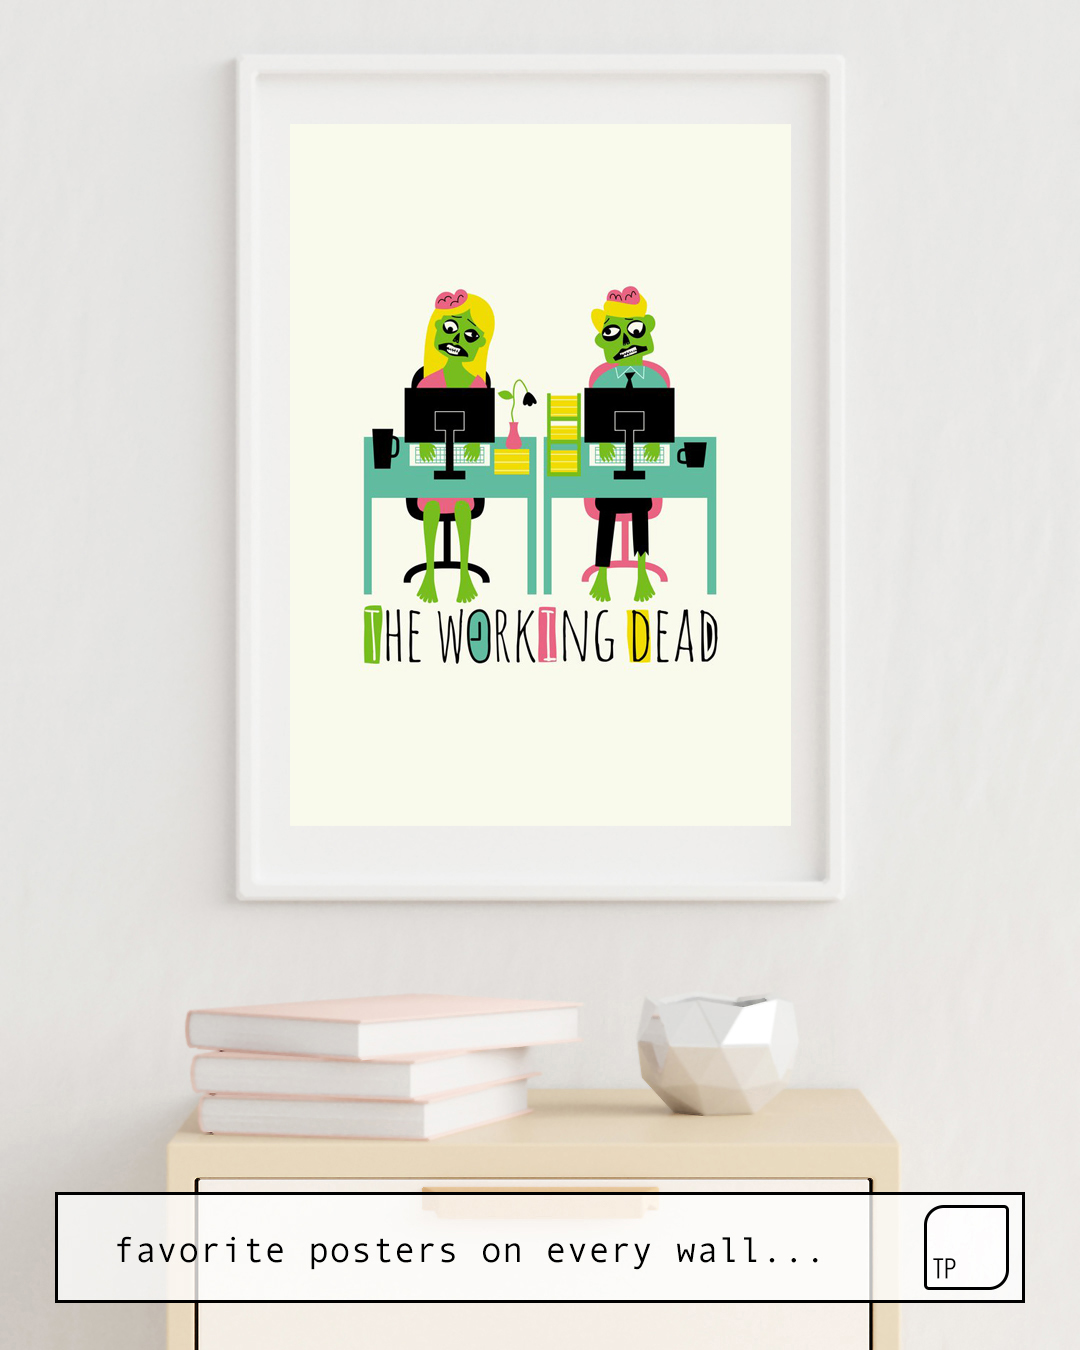 Poster | THE WORKING DEAD by Andy Westface